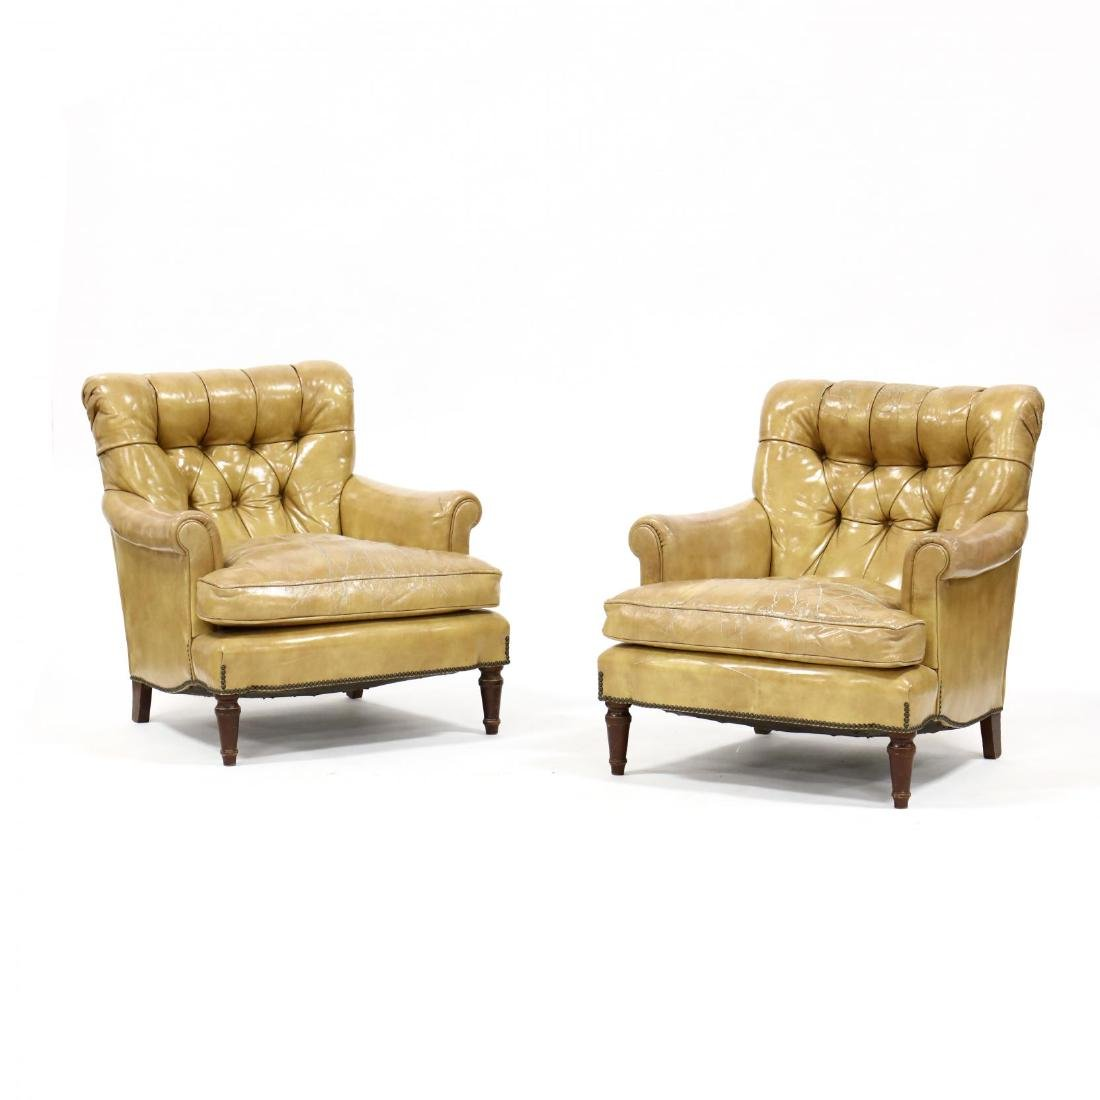 Pair of Vintage Leather Upholstered Club Chairs